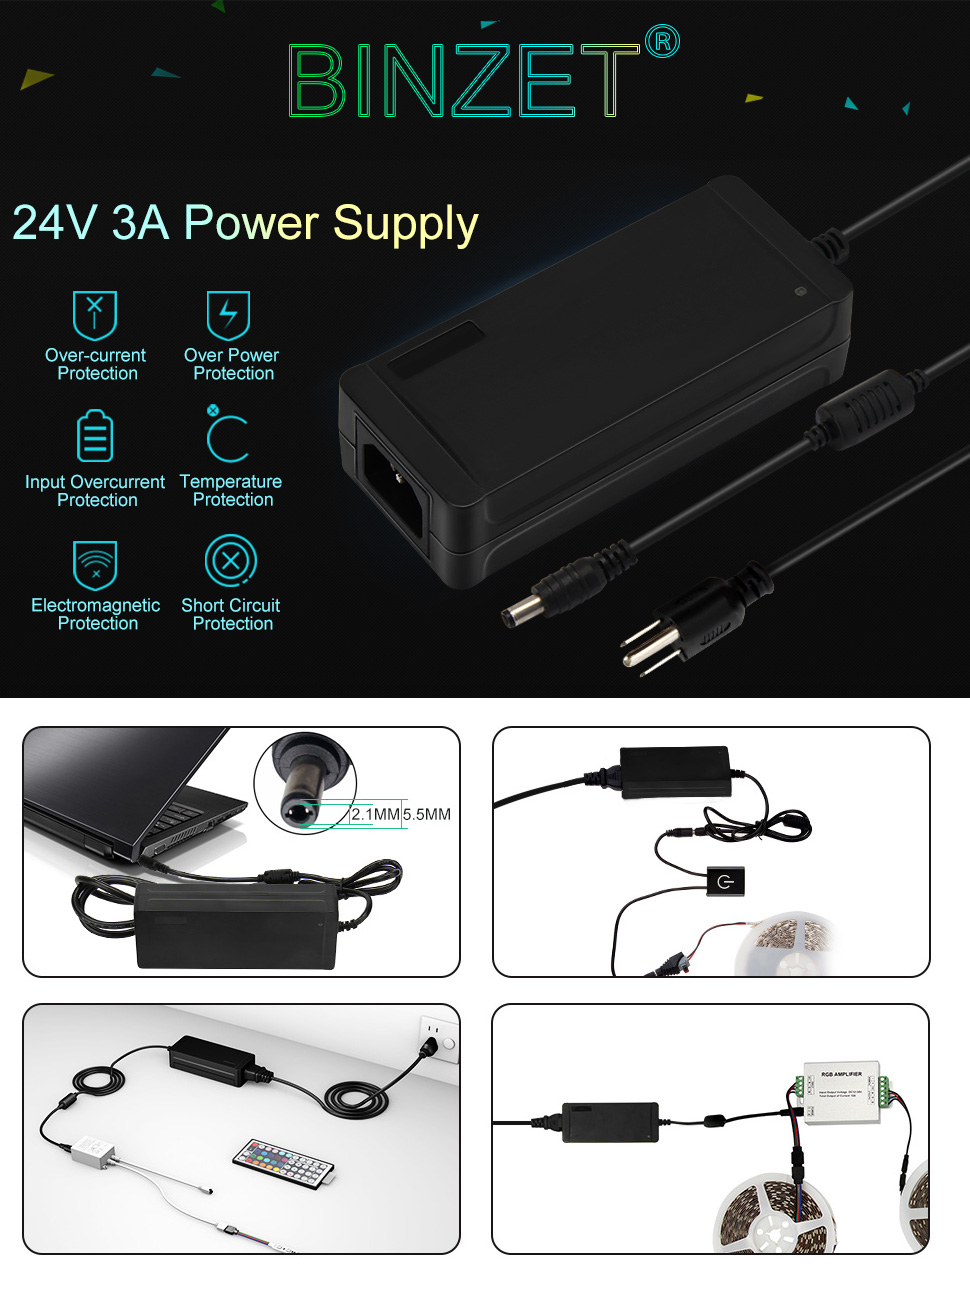 Binzet Ac To Dc 24 Volt 3 Amp Power Supply Adapter 24vac 24vdc Source Abuse Report Schematic High Quality And New For Led Strip String Wireless Router Adsl Cats Hub Switches Security Cameras Audio Video Etc